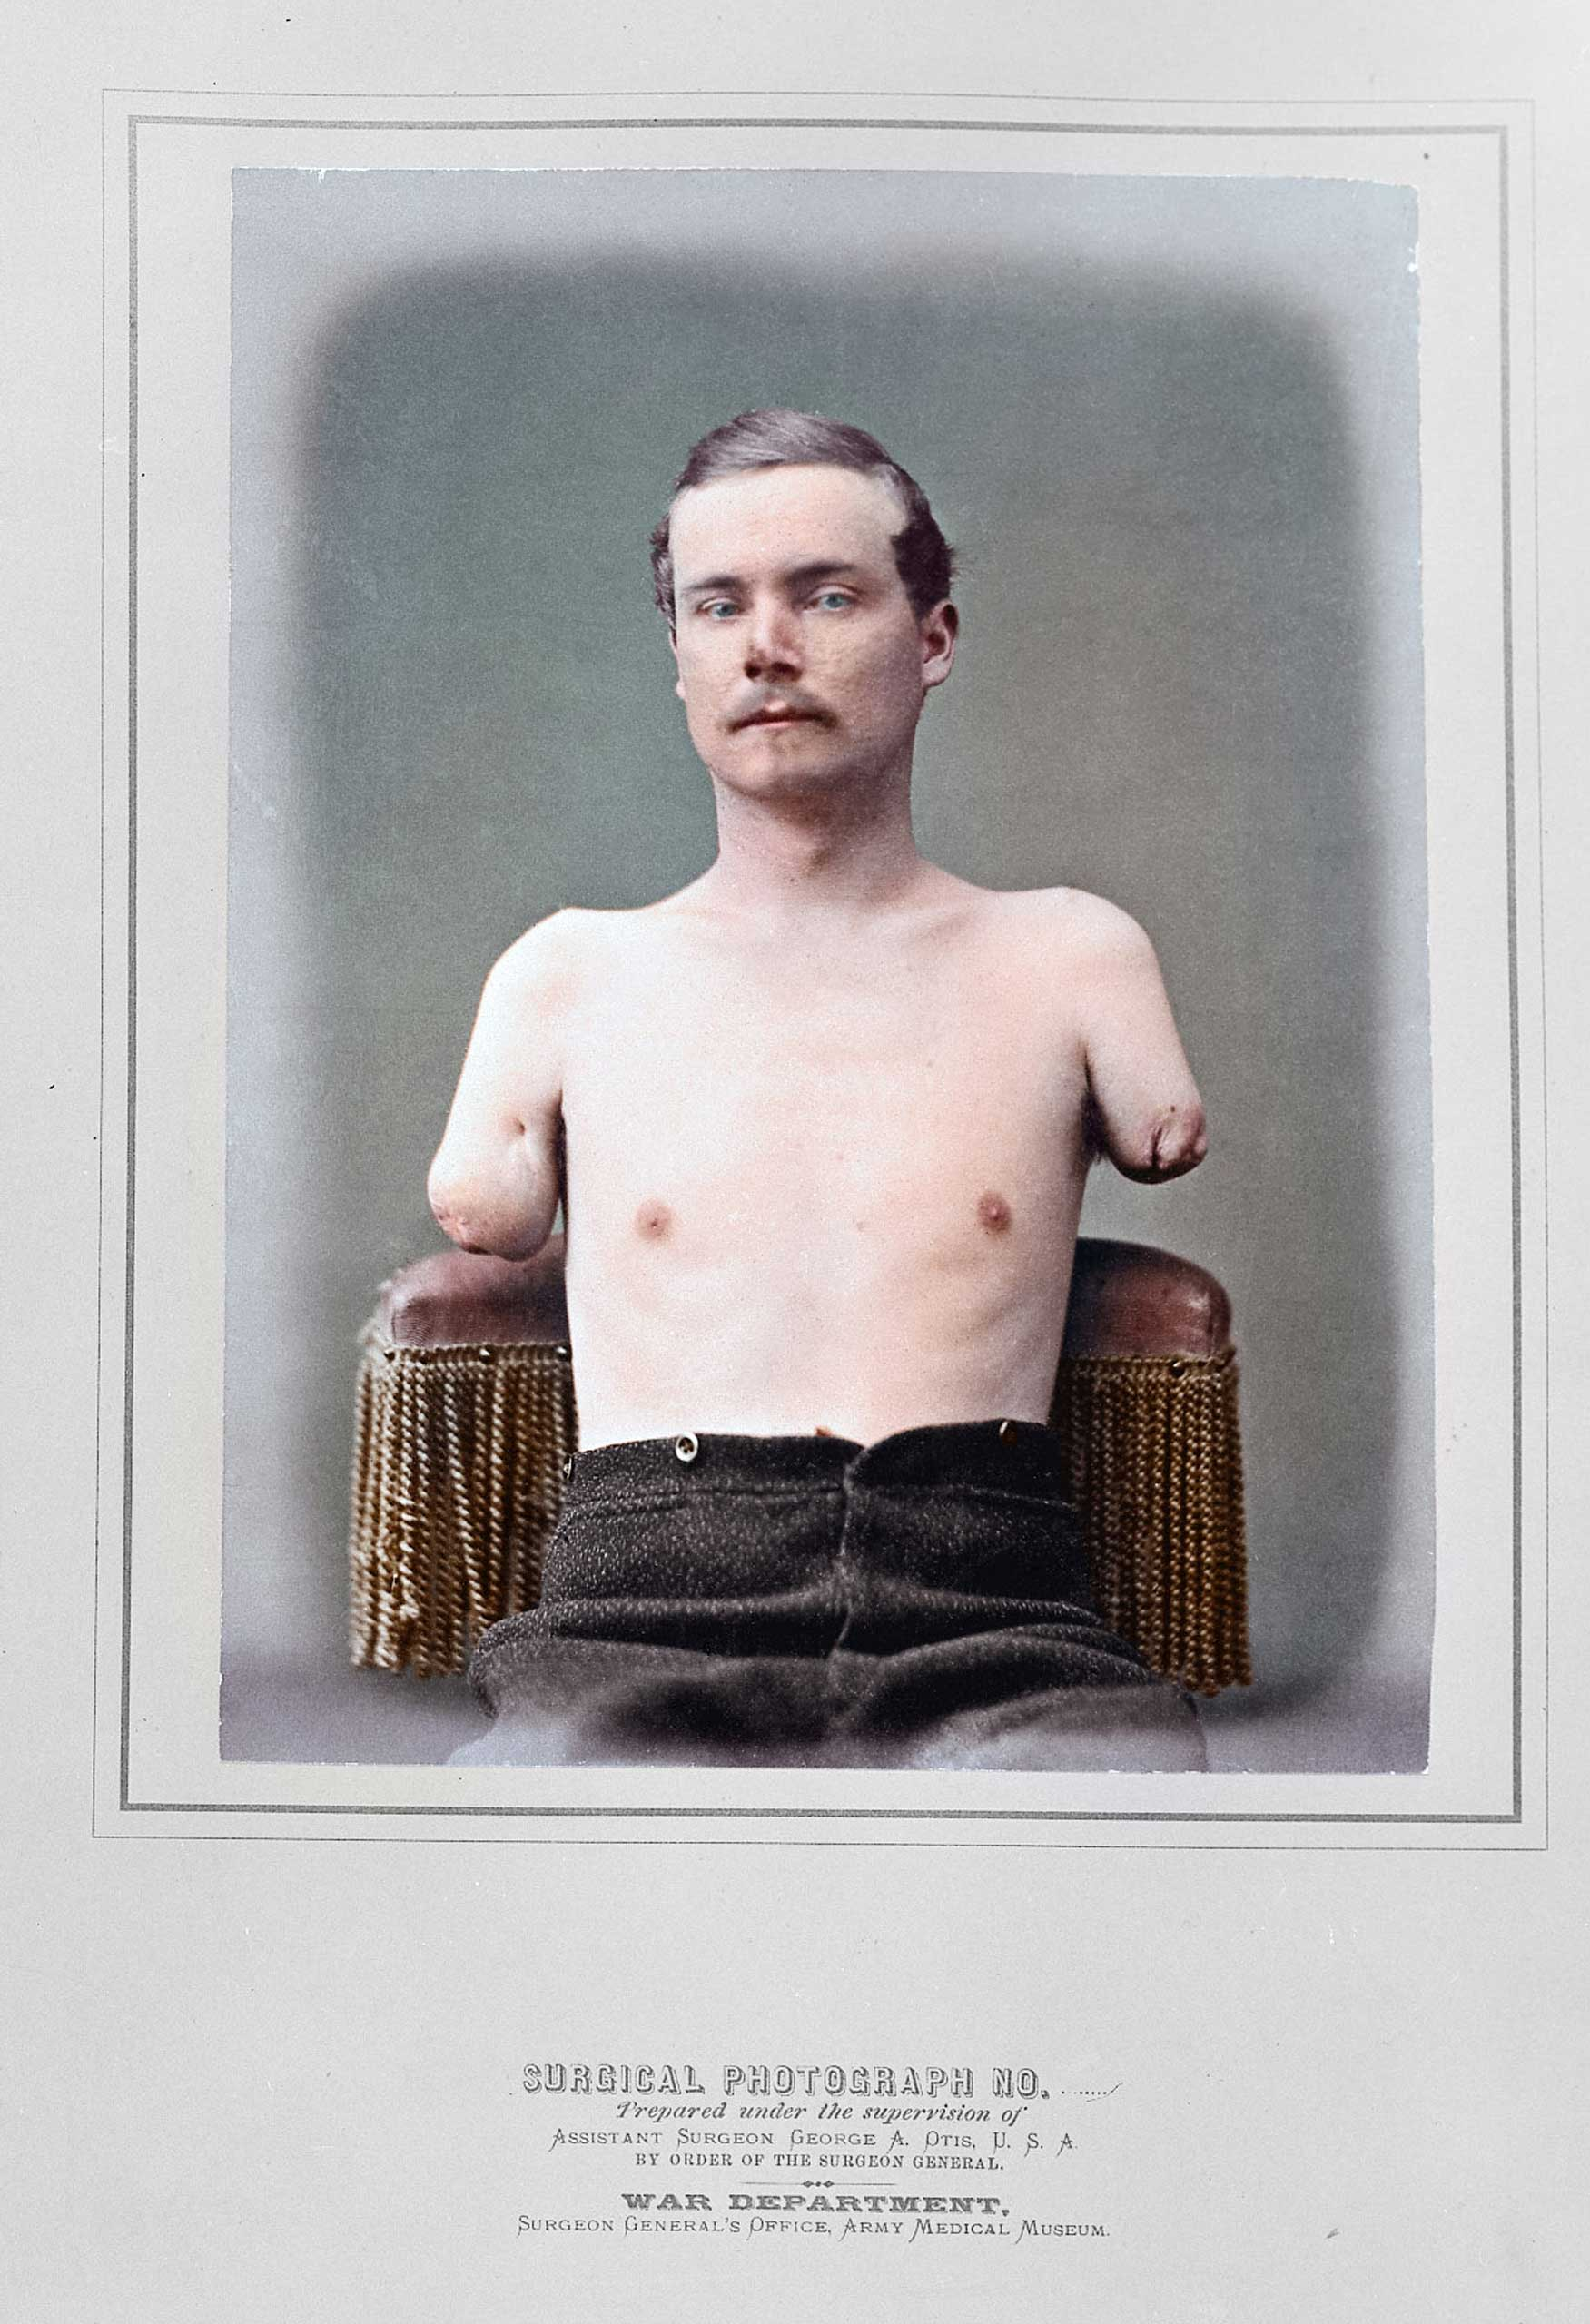 A surgical photo from the Surgeon General's War Department shows an injured soldier with both arms amputated.